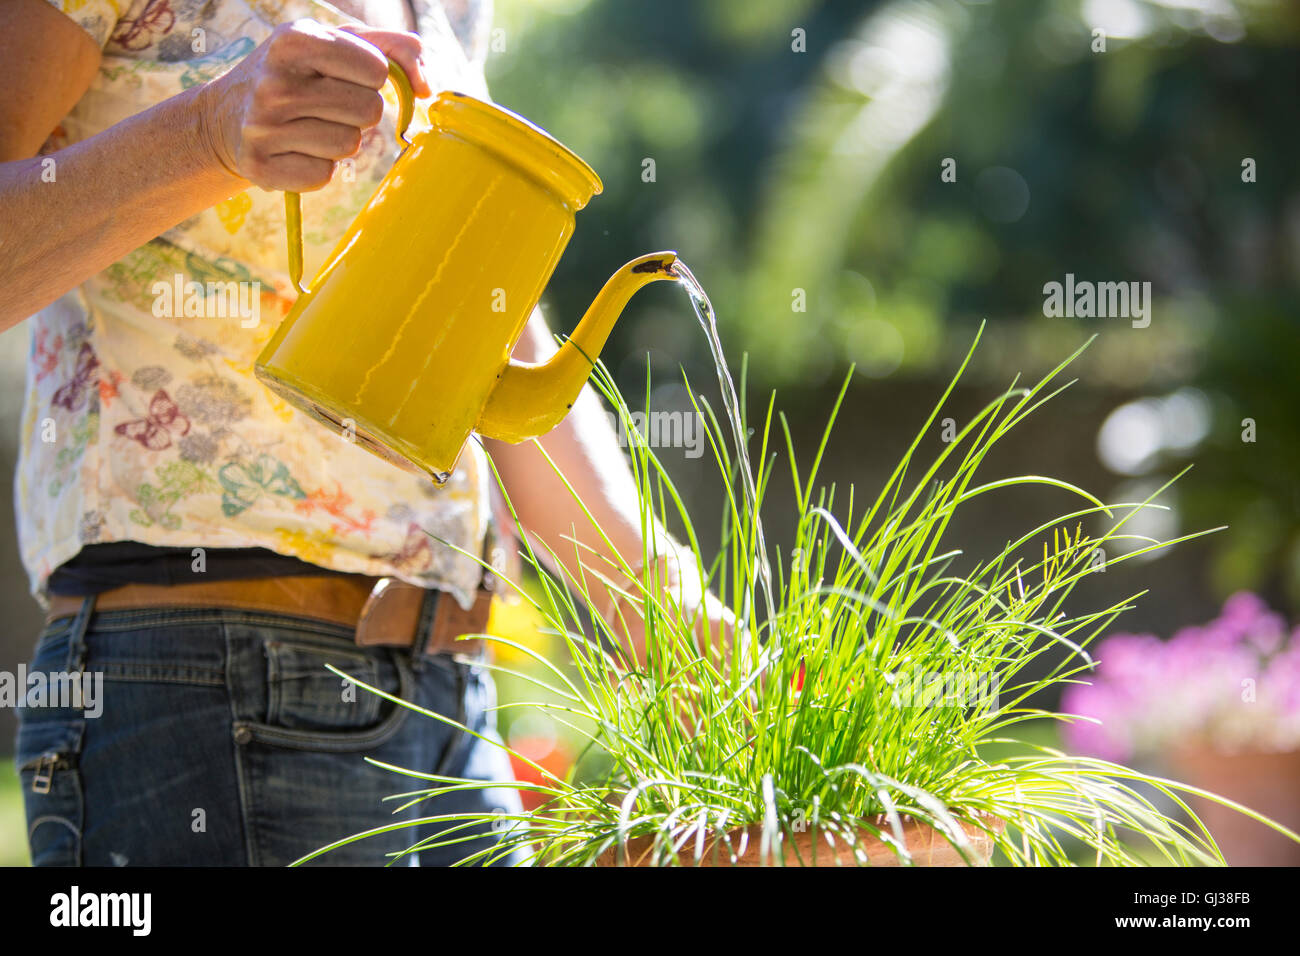 Cropped view of woman watering plants in garden - Stock Image